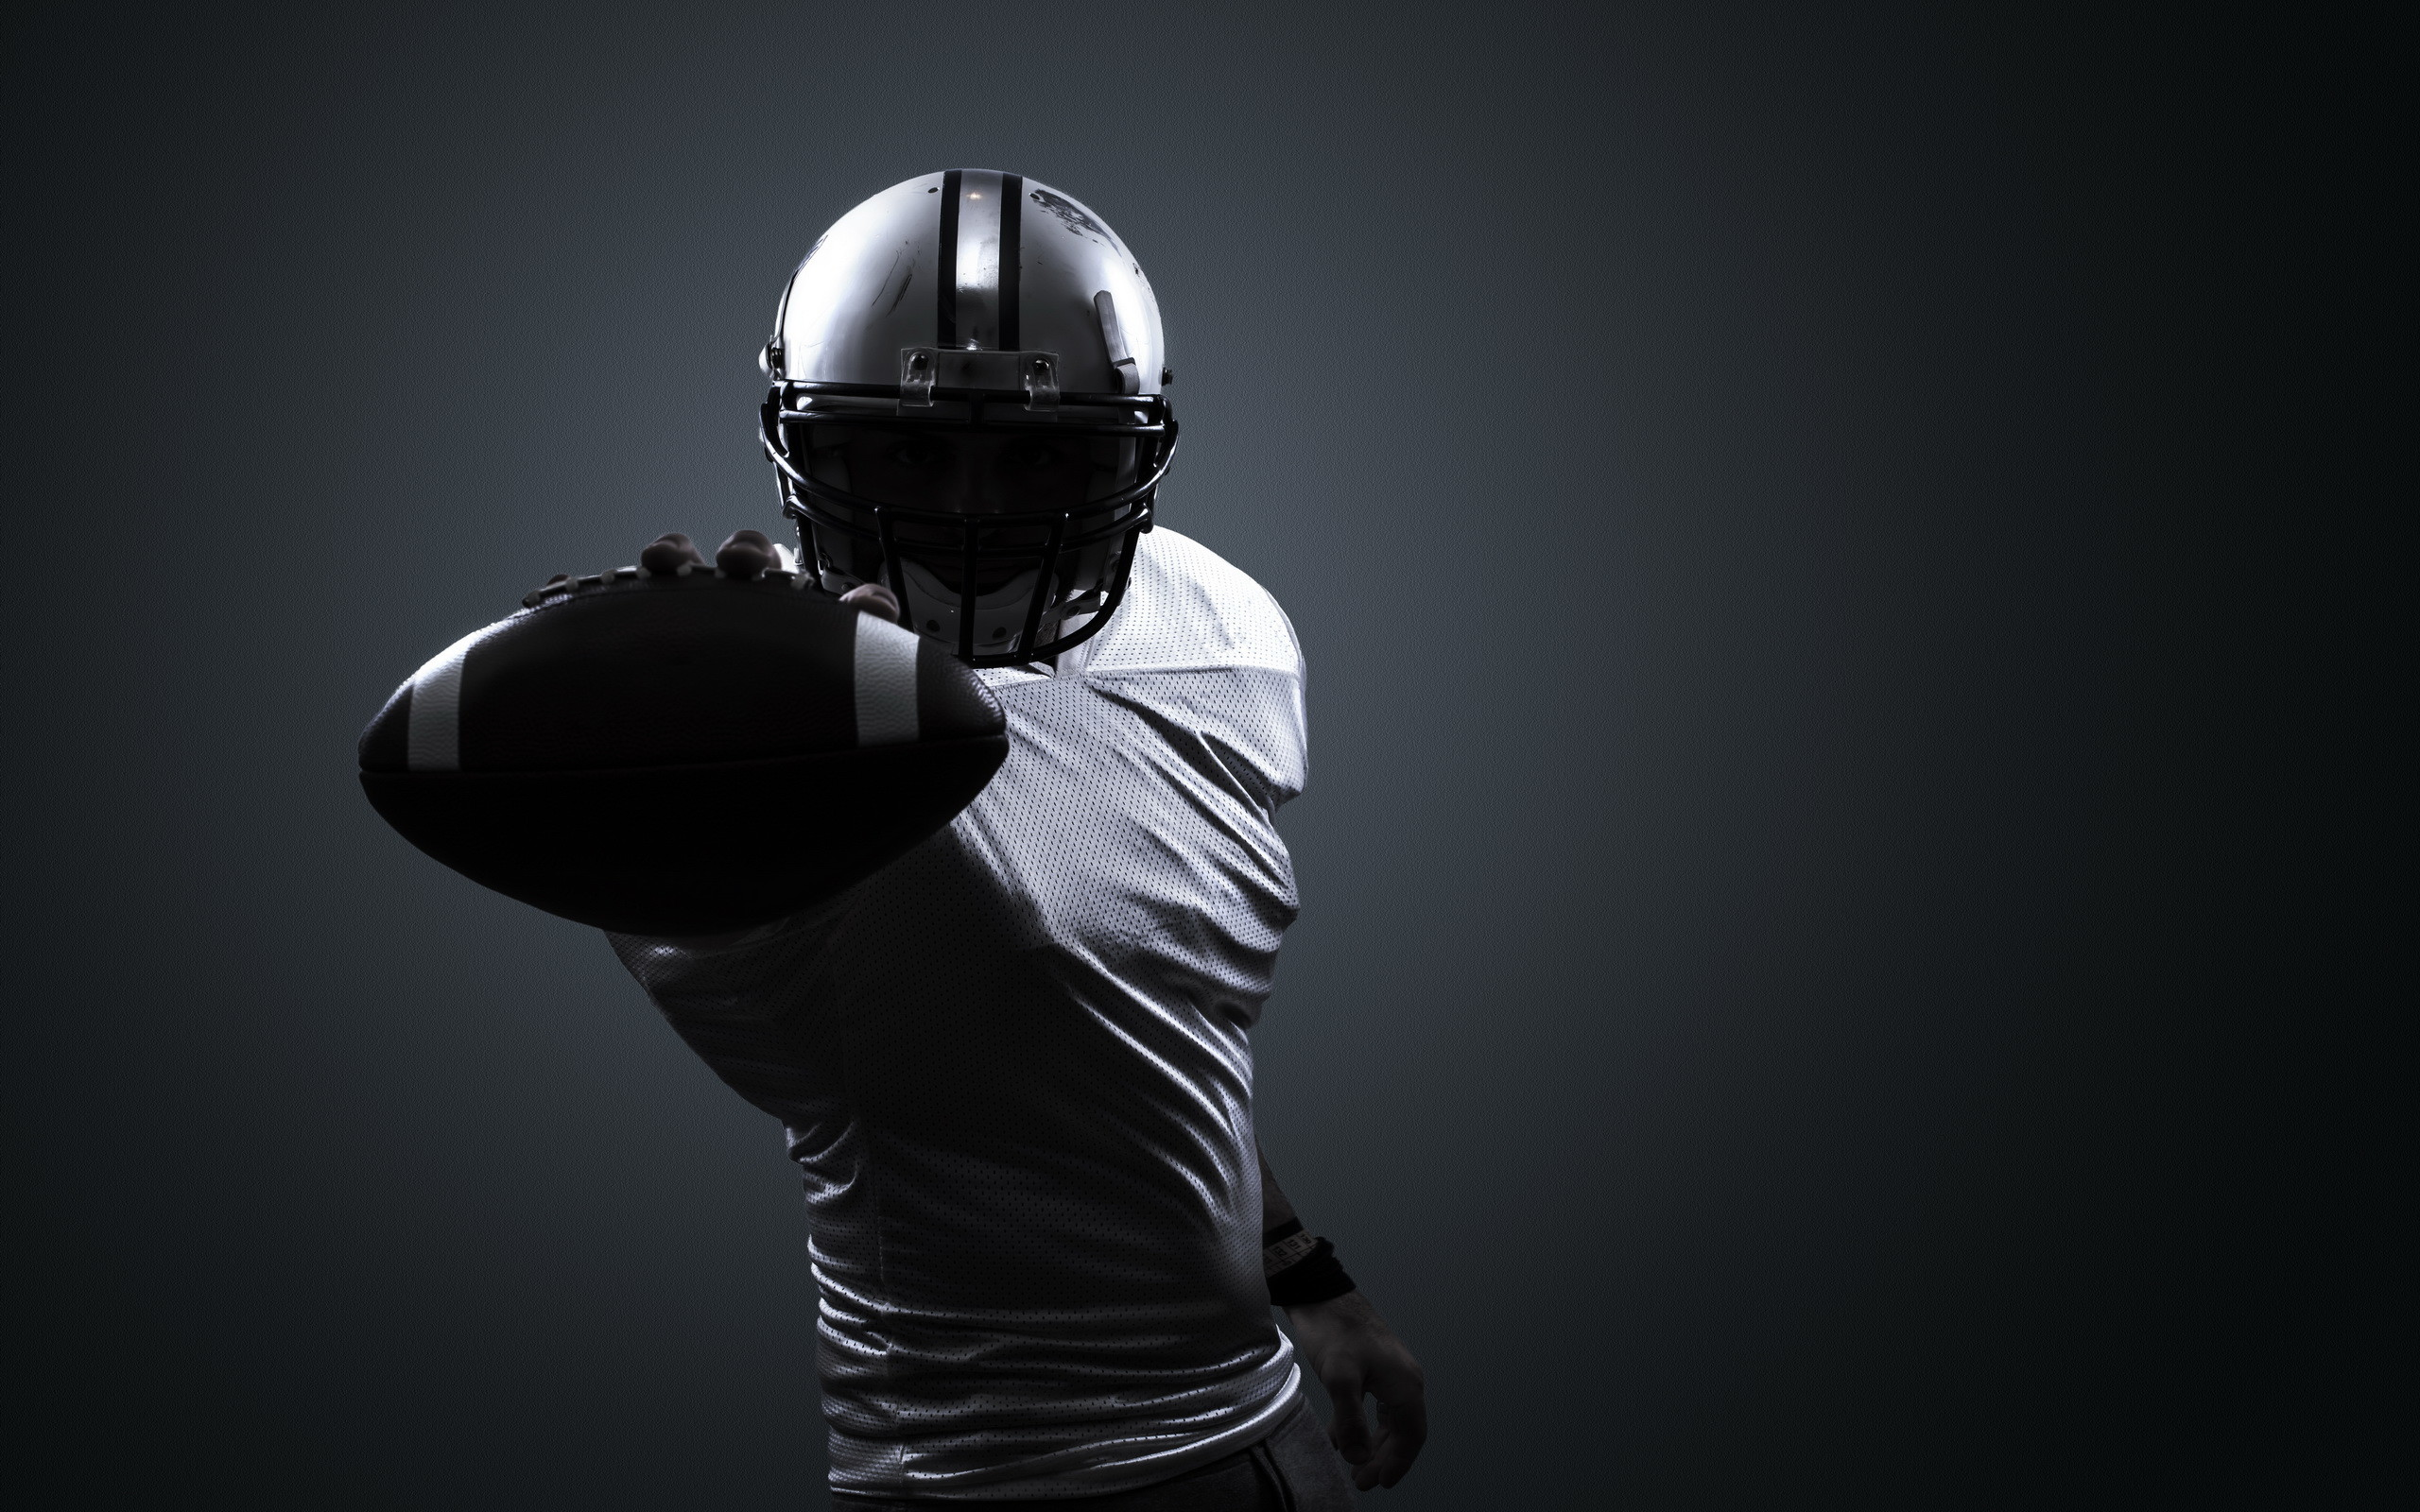 2560x1600 American Football Player Wallpaper | HD Wallpapers | Pinterest | Wallpaper